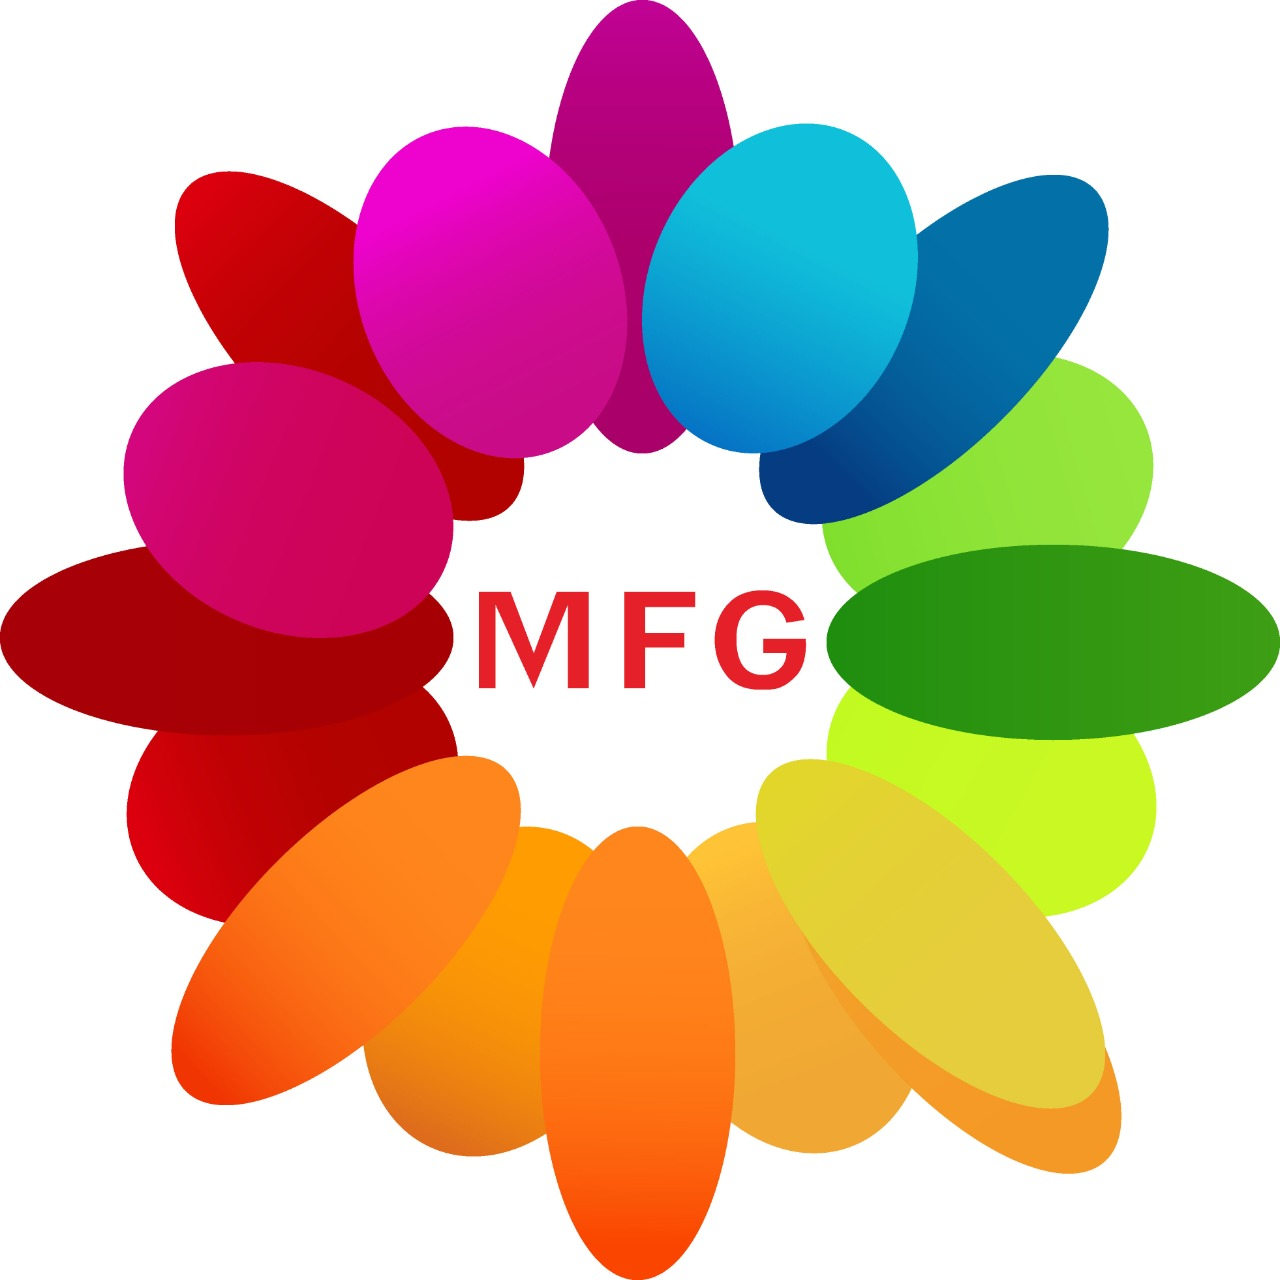 1 Kg Photo cake